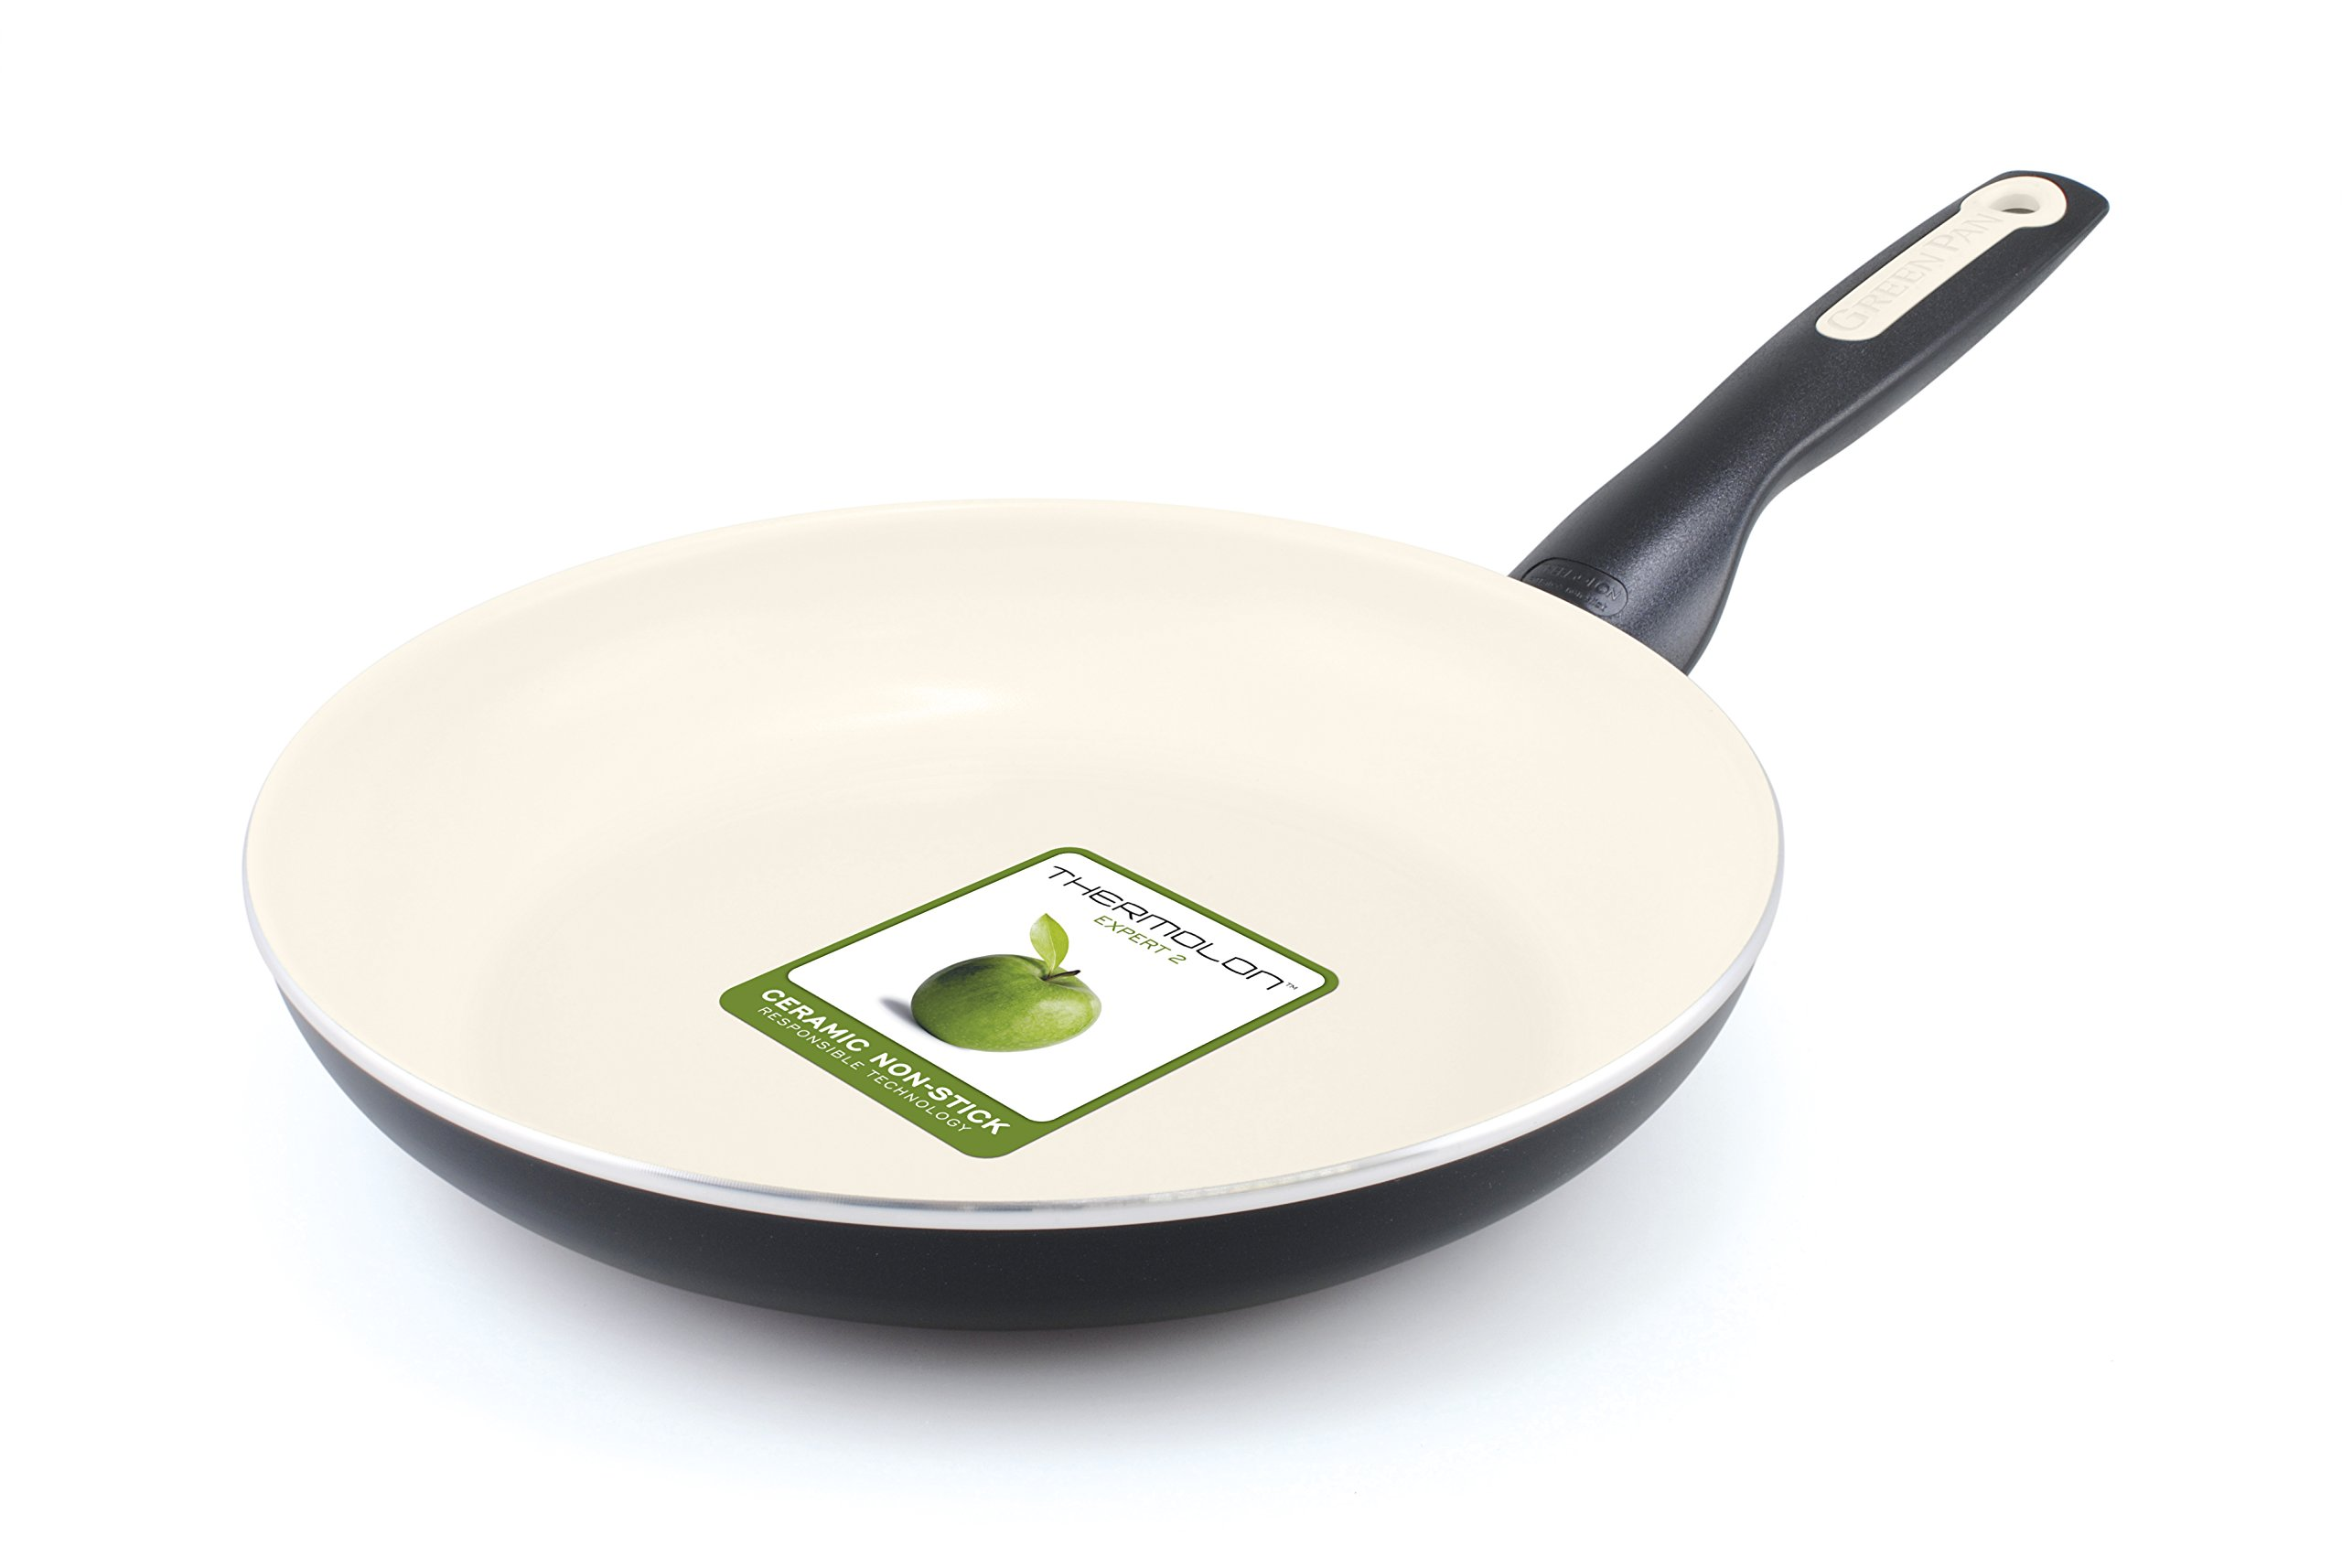 GreenPan Rio 7'' Ceramic Non-Stick Open Frypan, Black